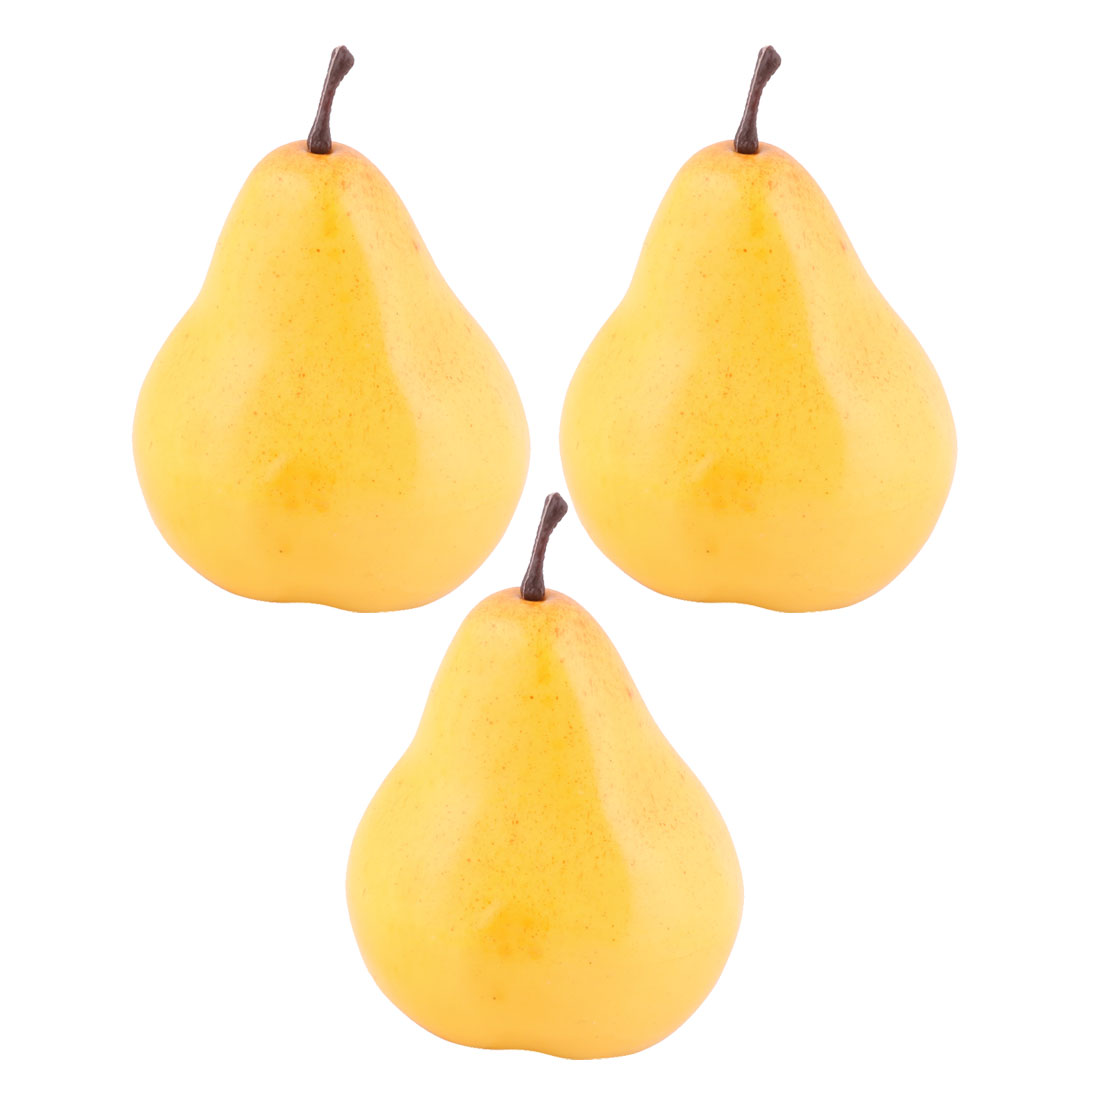 Household Table Decor Foam Handmade Simulation Artificial Fruit Pear Yellow 3pcs